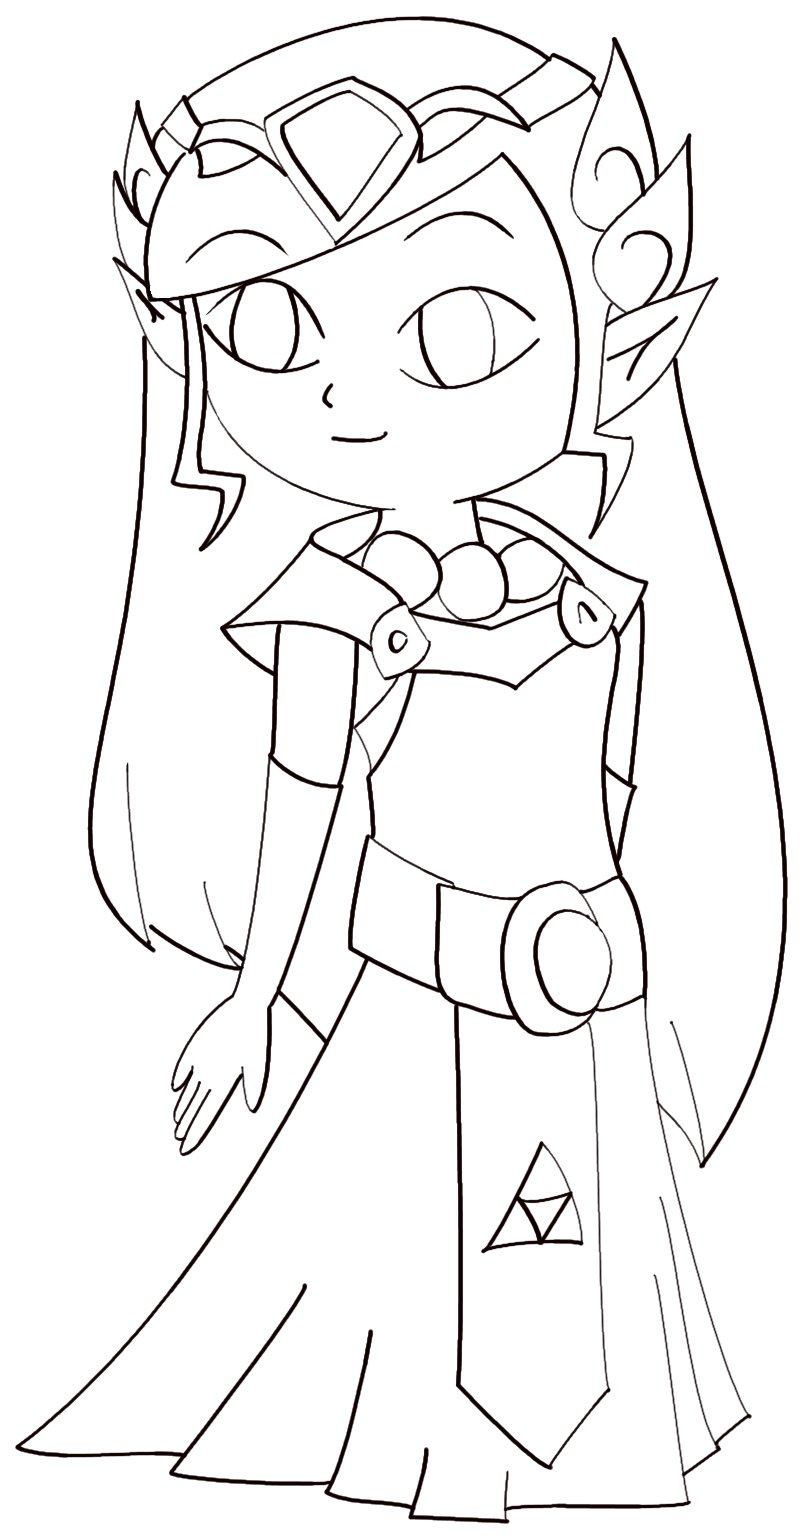 minish cap coloring pages - photo#7